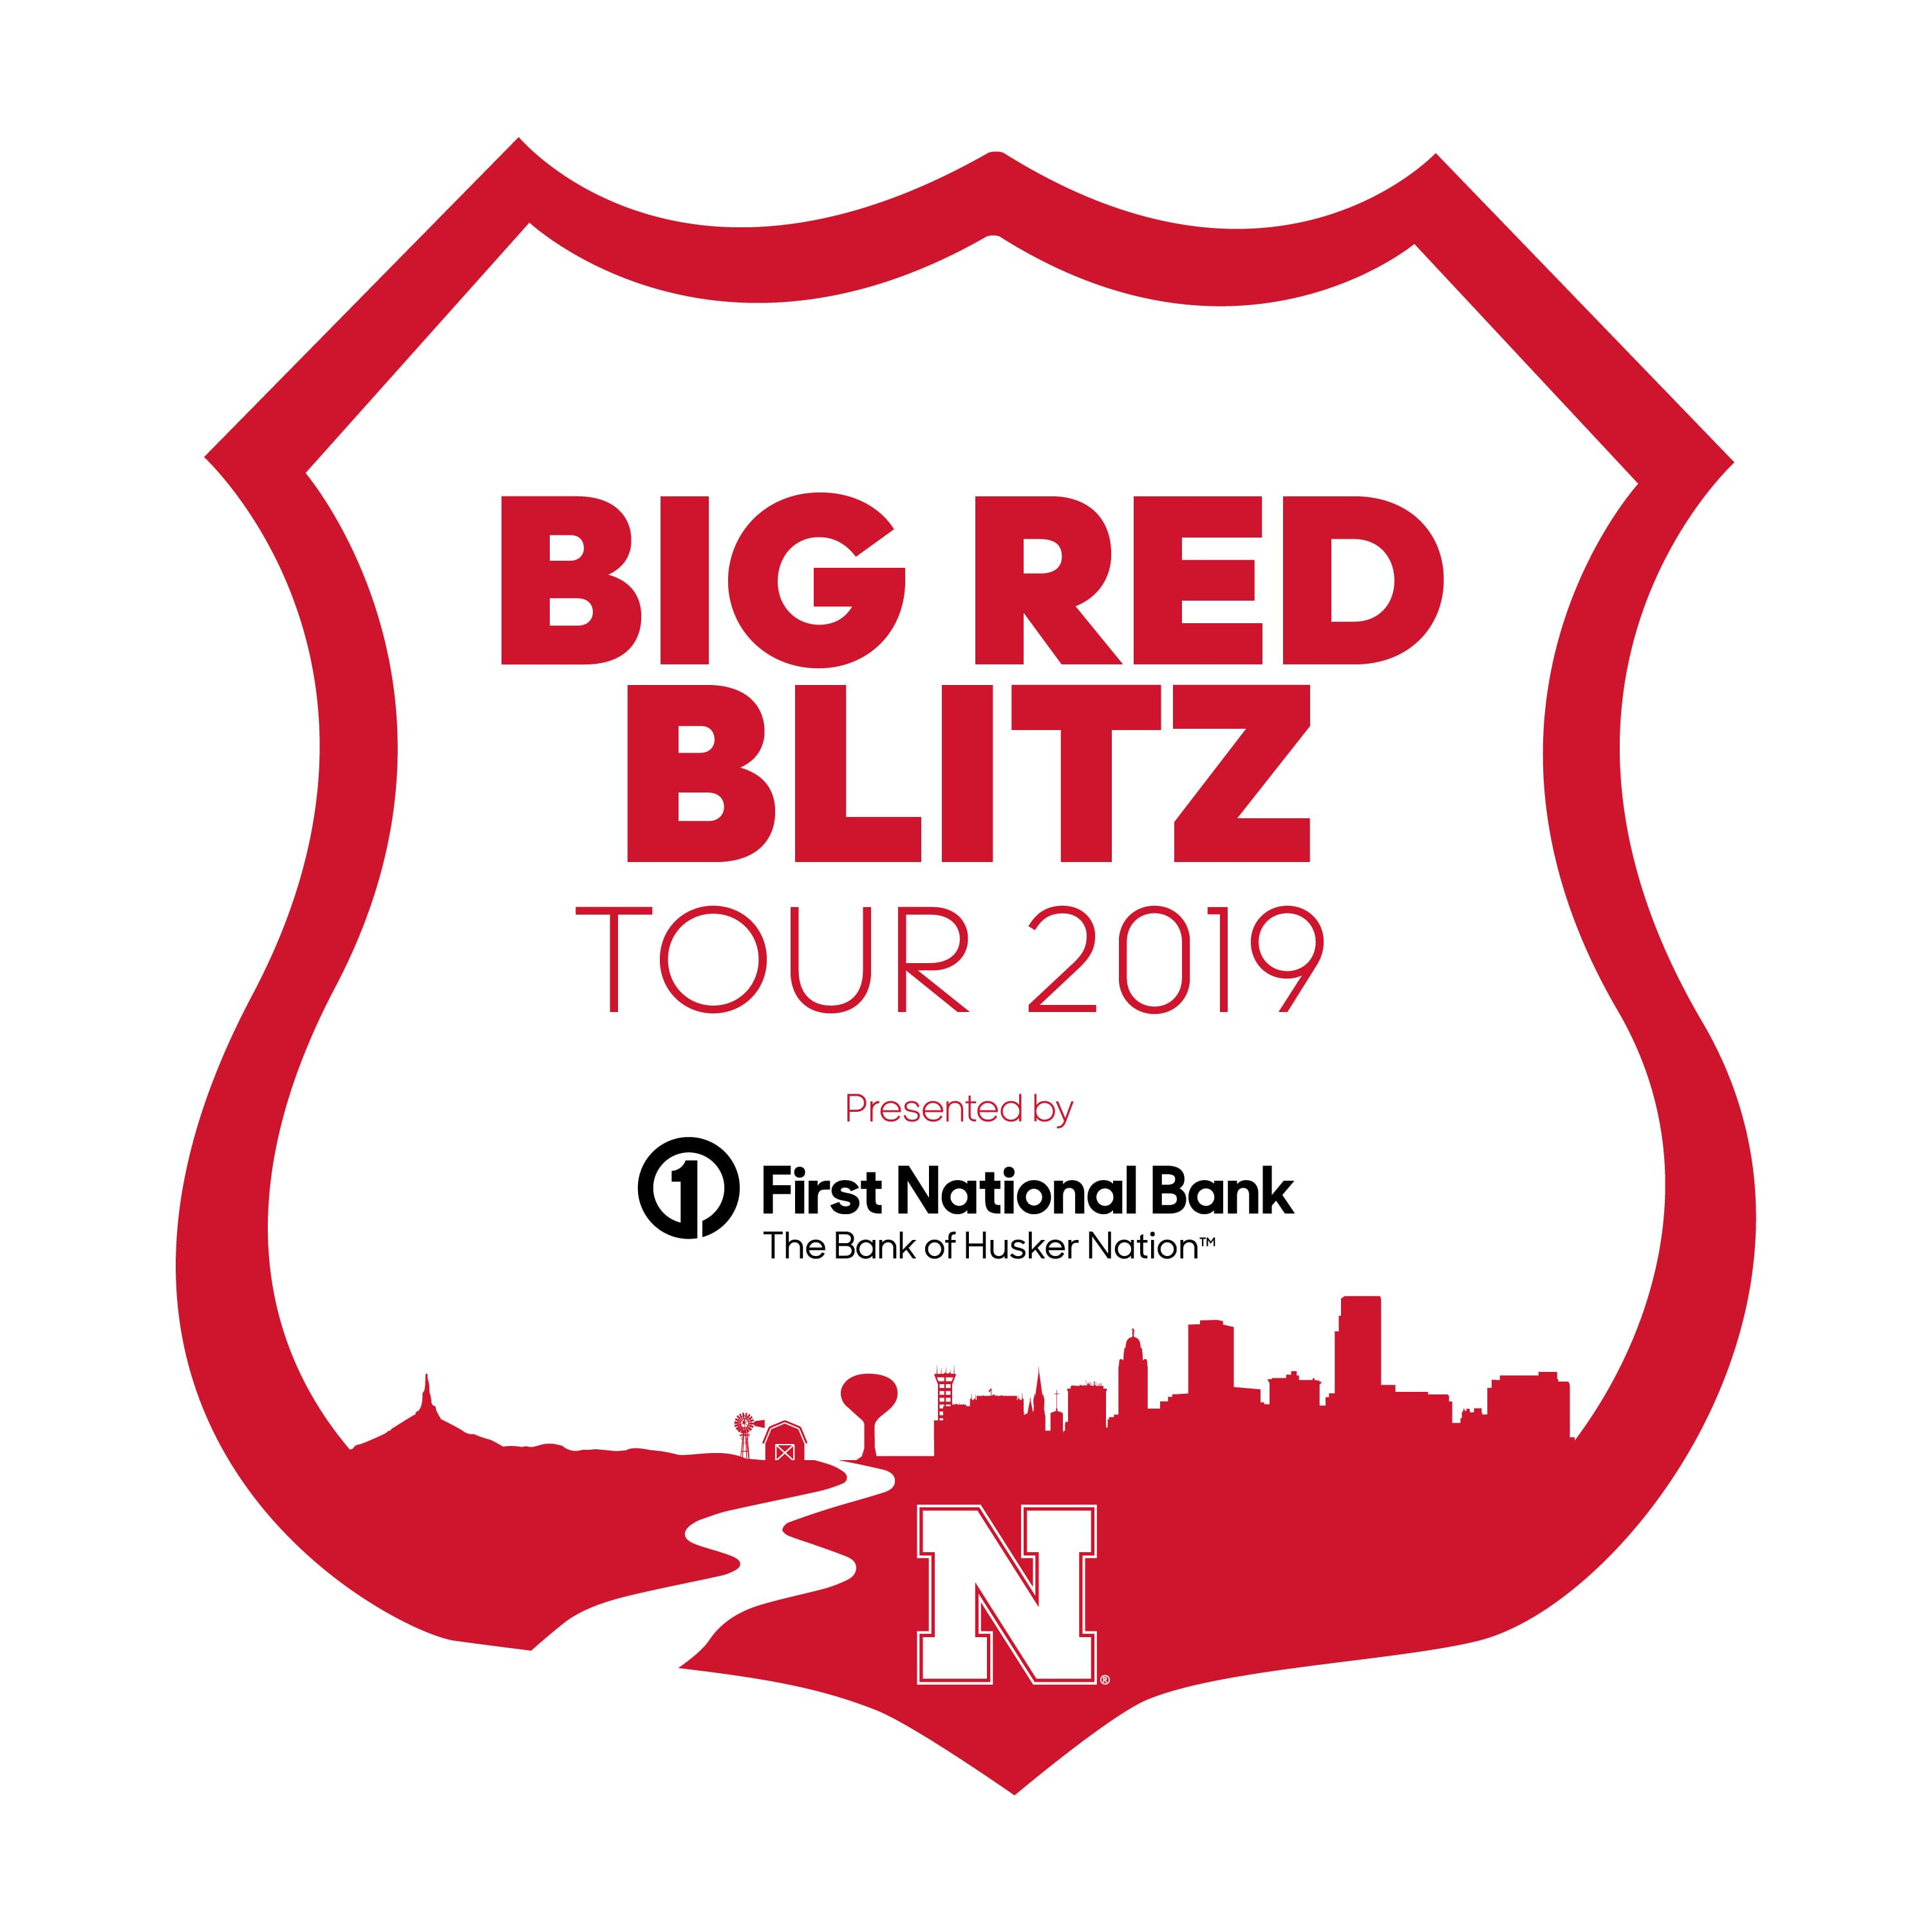 Huskers Announce Big Red Blitz Tour that will Feature Moos, Frost, and Hoiberg